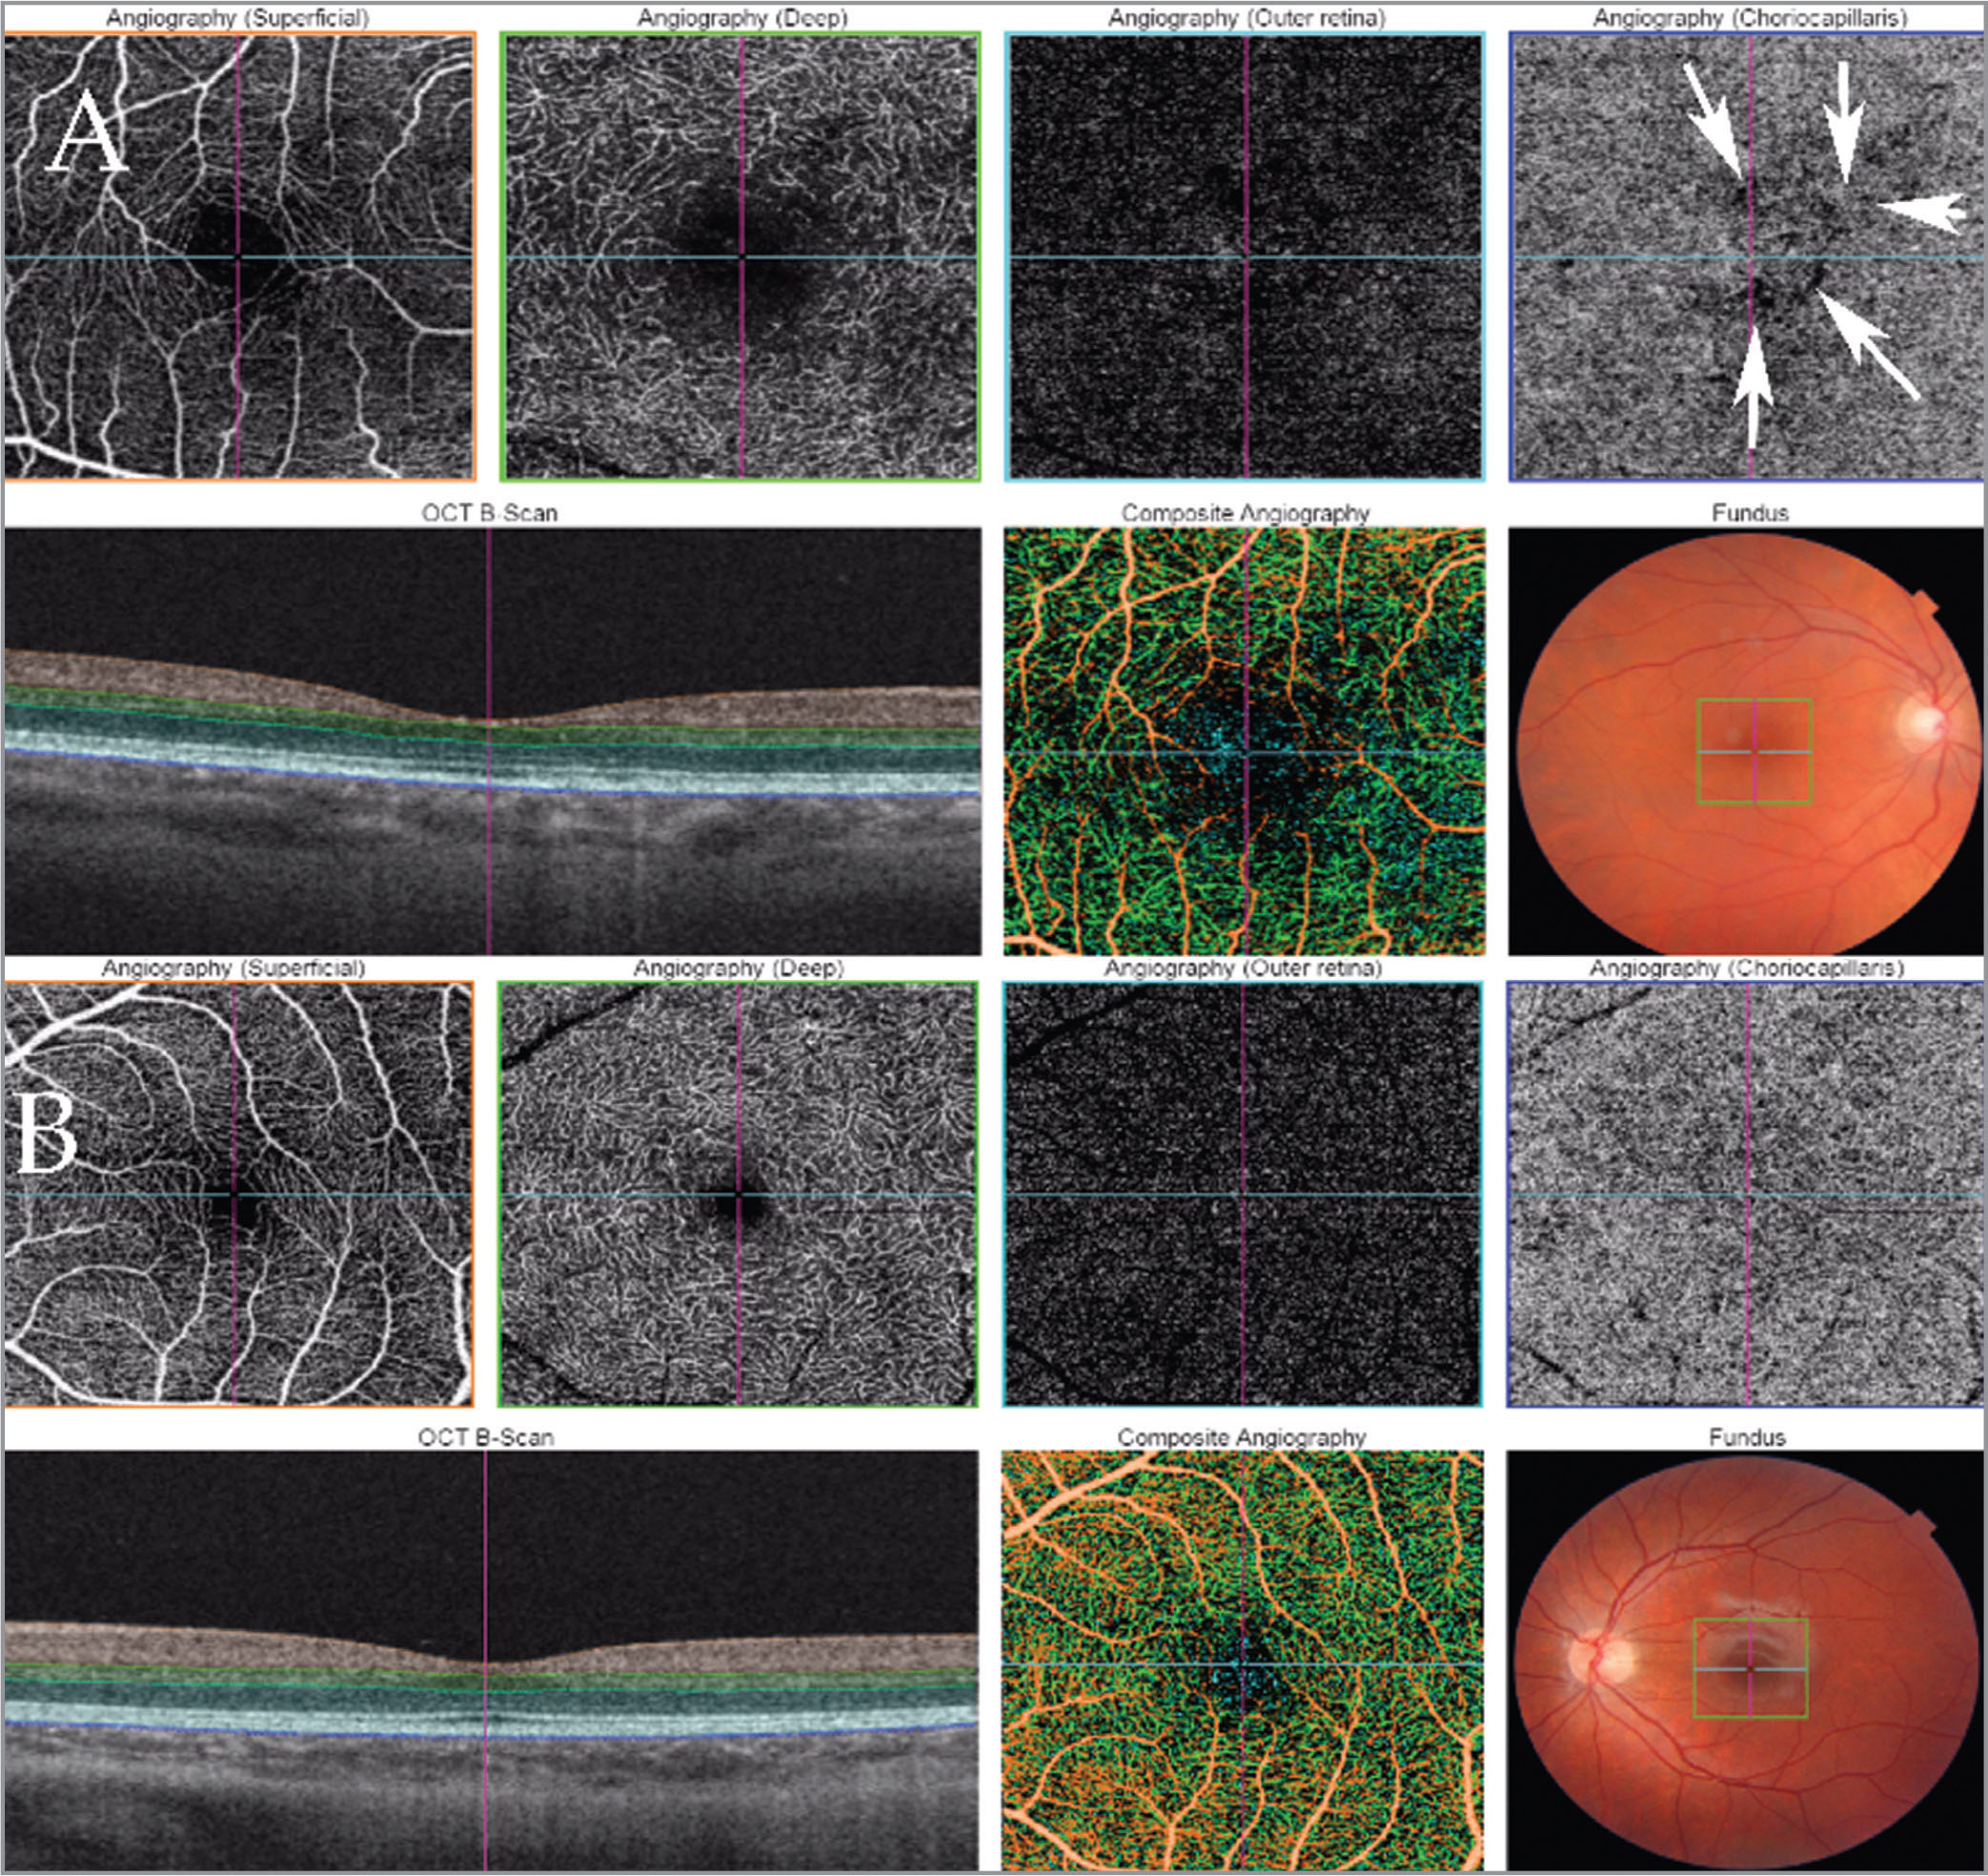 Swept-source optical coherence tomography angiography comparison between the fellow eye of full-thickness macular hole (FTMH) (top) and a healthy eye (bottom). Orange frame: Retina at the level of superficial vessels. Green frame: Retina at the level of deep retinal vessels. Light blue frame: Retina at the level of retinal pigment epithelium. Dark blue frame: Level of choriocapillaris. Arrows: Area of deteriorated reflectivity at the choriocapillaris layer in the fellow eye of FTMH.